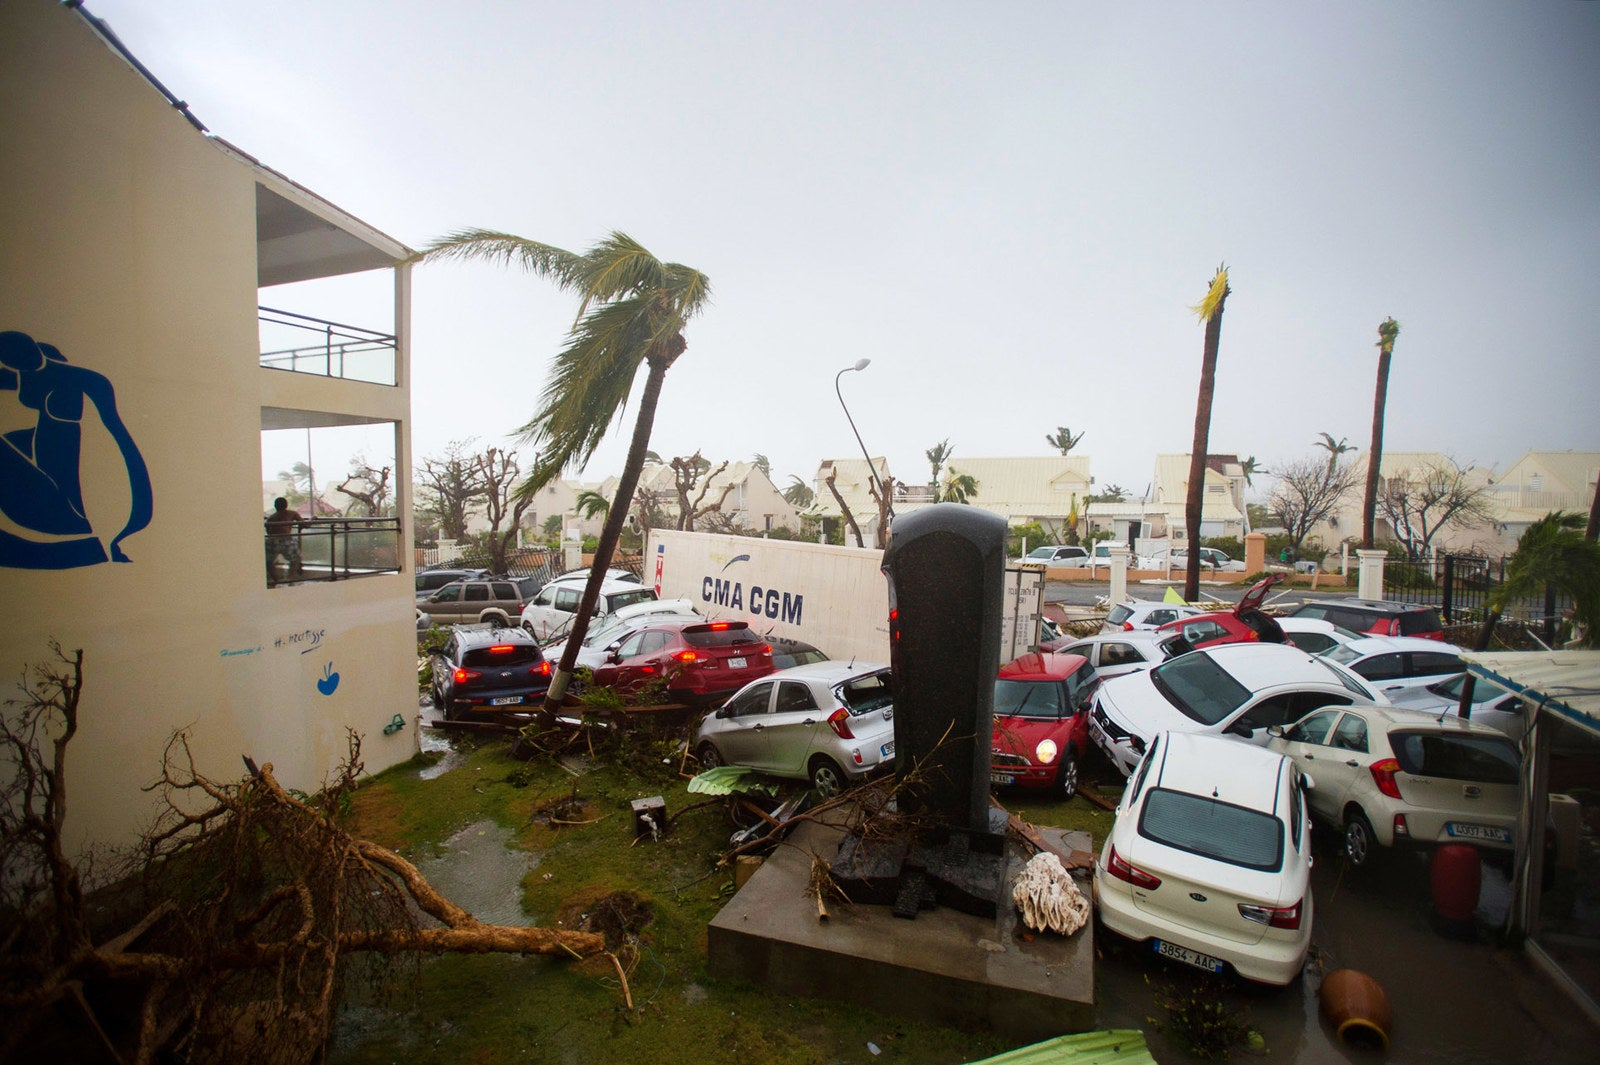 Cars are left piled on top of one another at the Hotel Mercure in Marigot, Saint Martin.